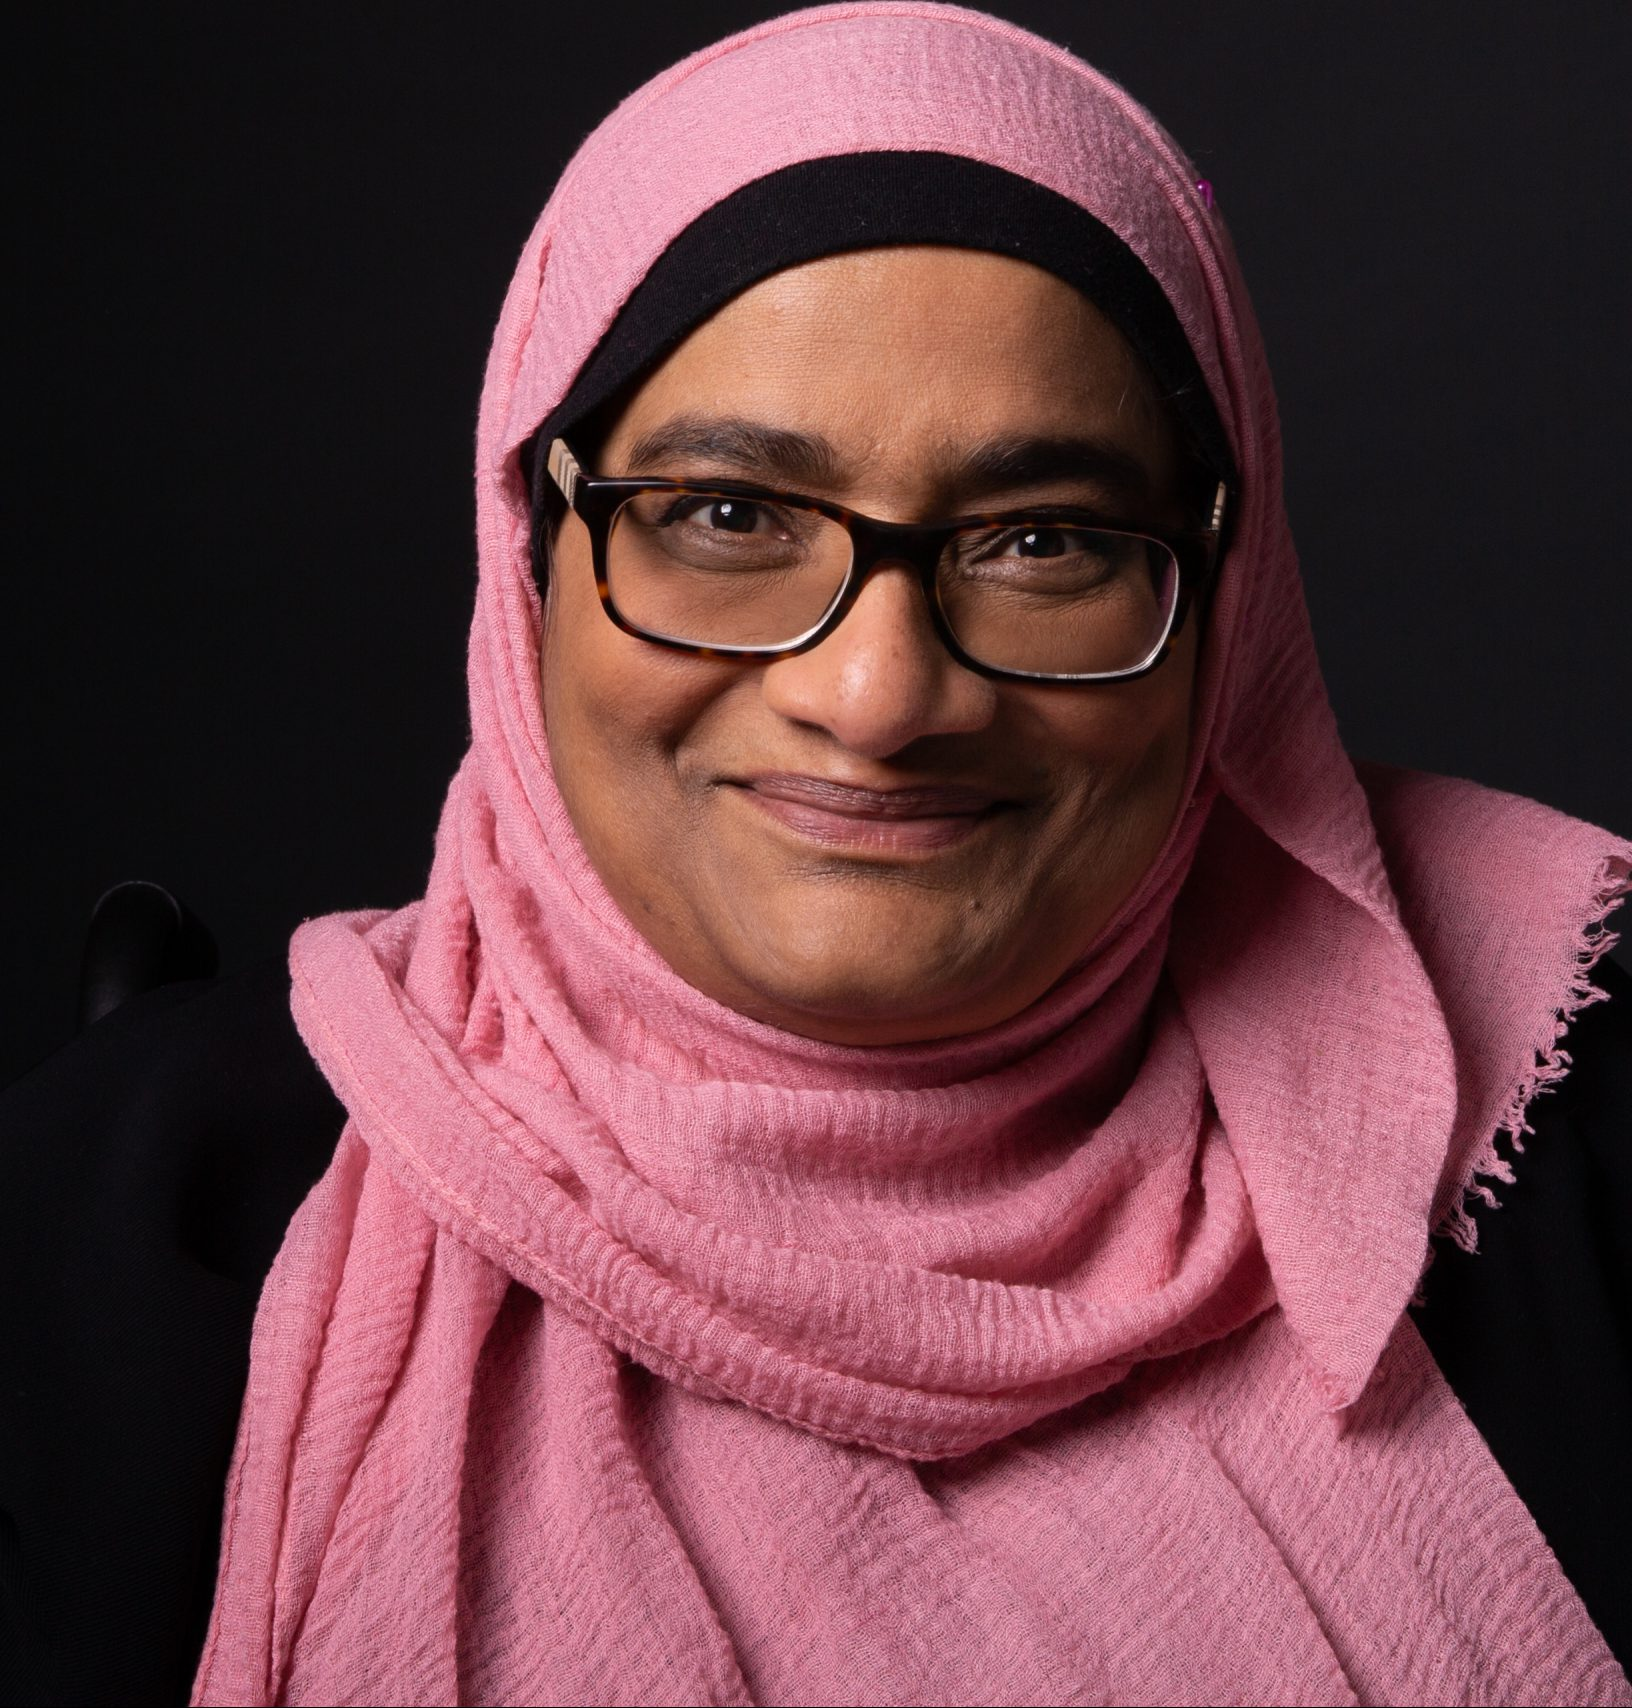 Rafia: Smiling wearing pink hijab and glasses with black background, picture is up to just below the shoulders.